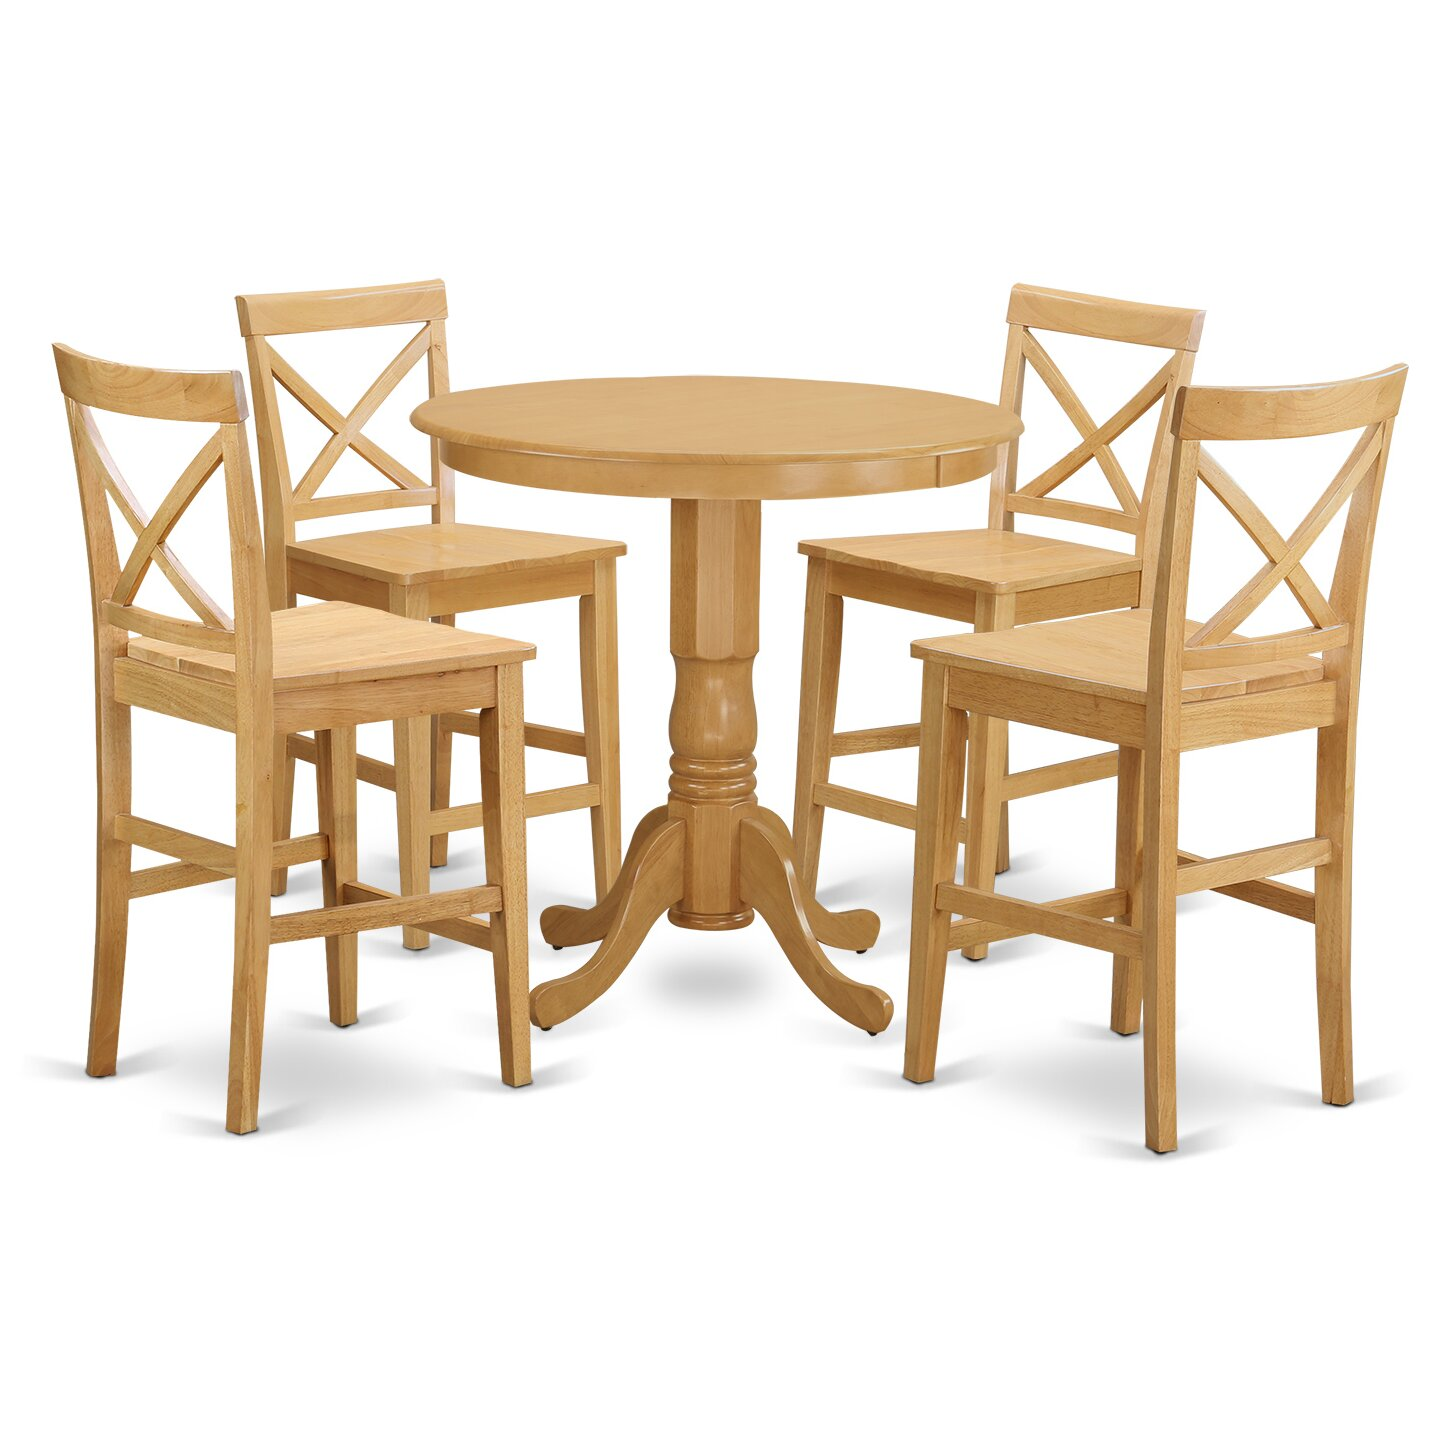 East west jackson 5 piece counter height pub table set - Bar height pub table and chairs ...